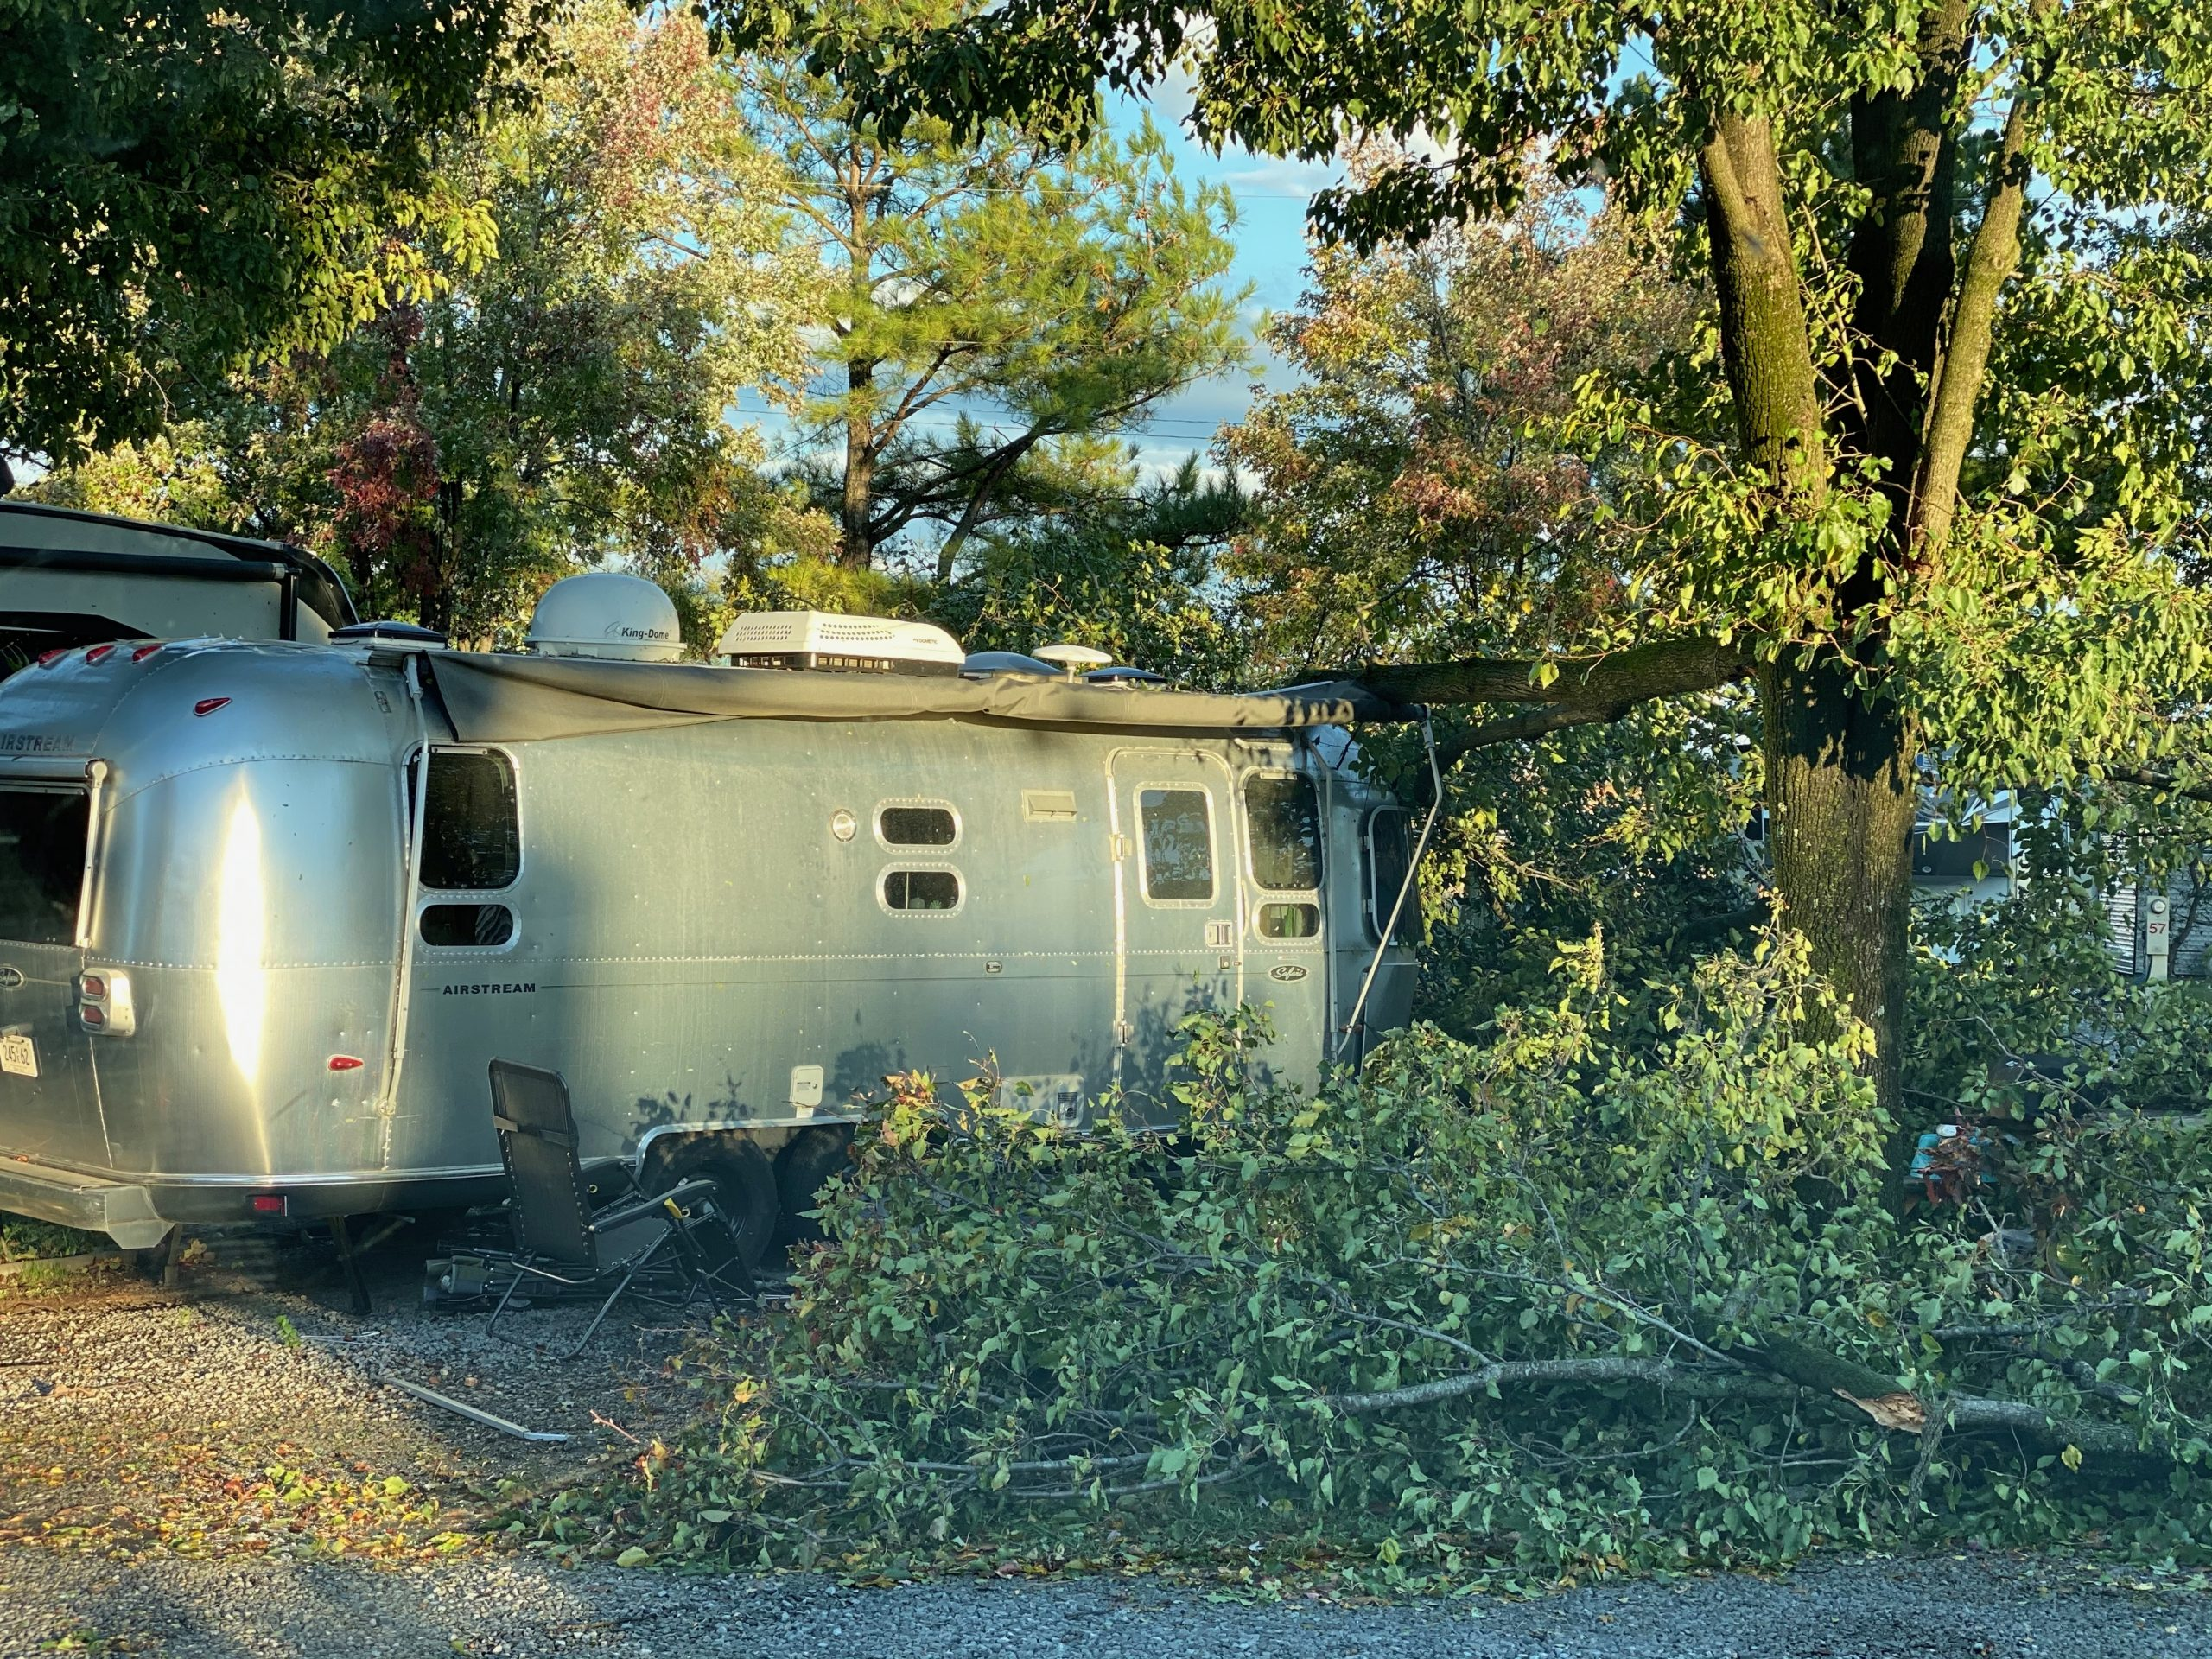 An Air Stream camper damaged in a windstorm would only be covered if the owner had comprehensive insurance coverage.